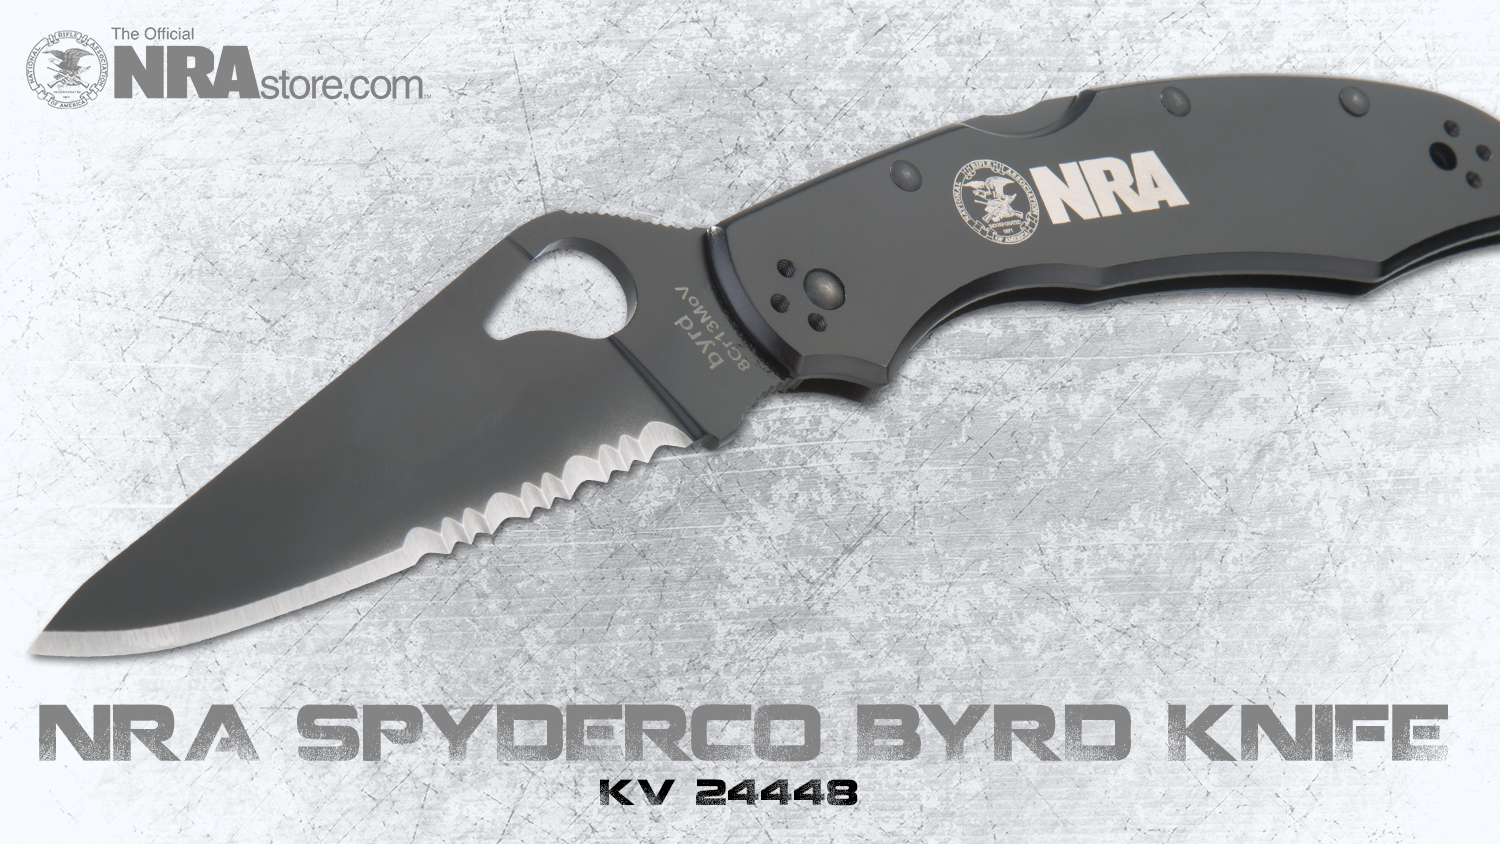 NRA Store Product Highlight: Spyderco Byrd Knife